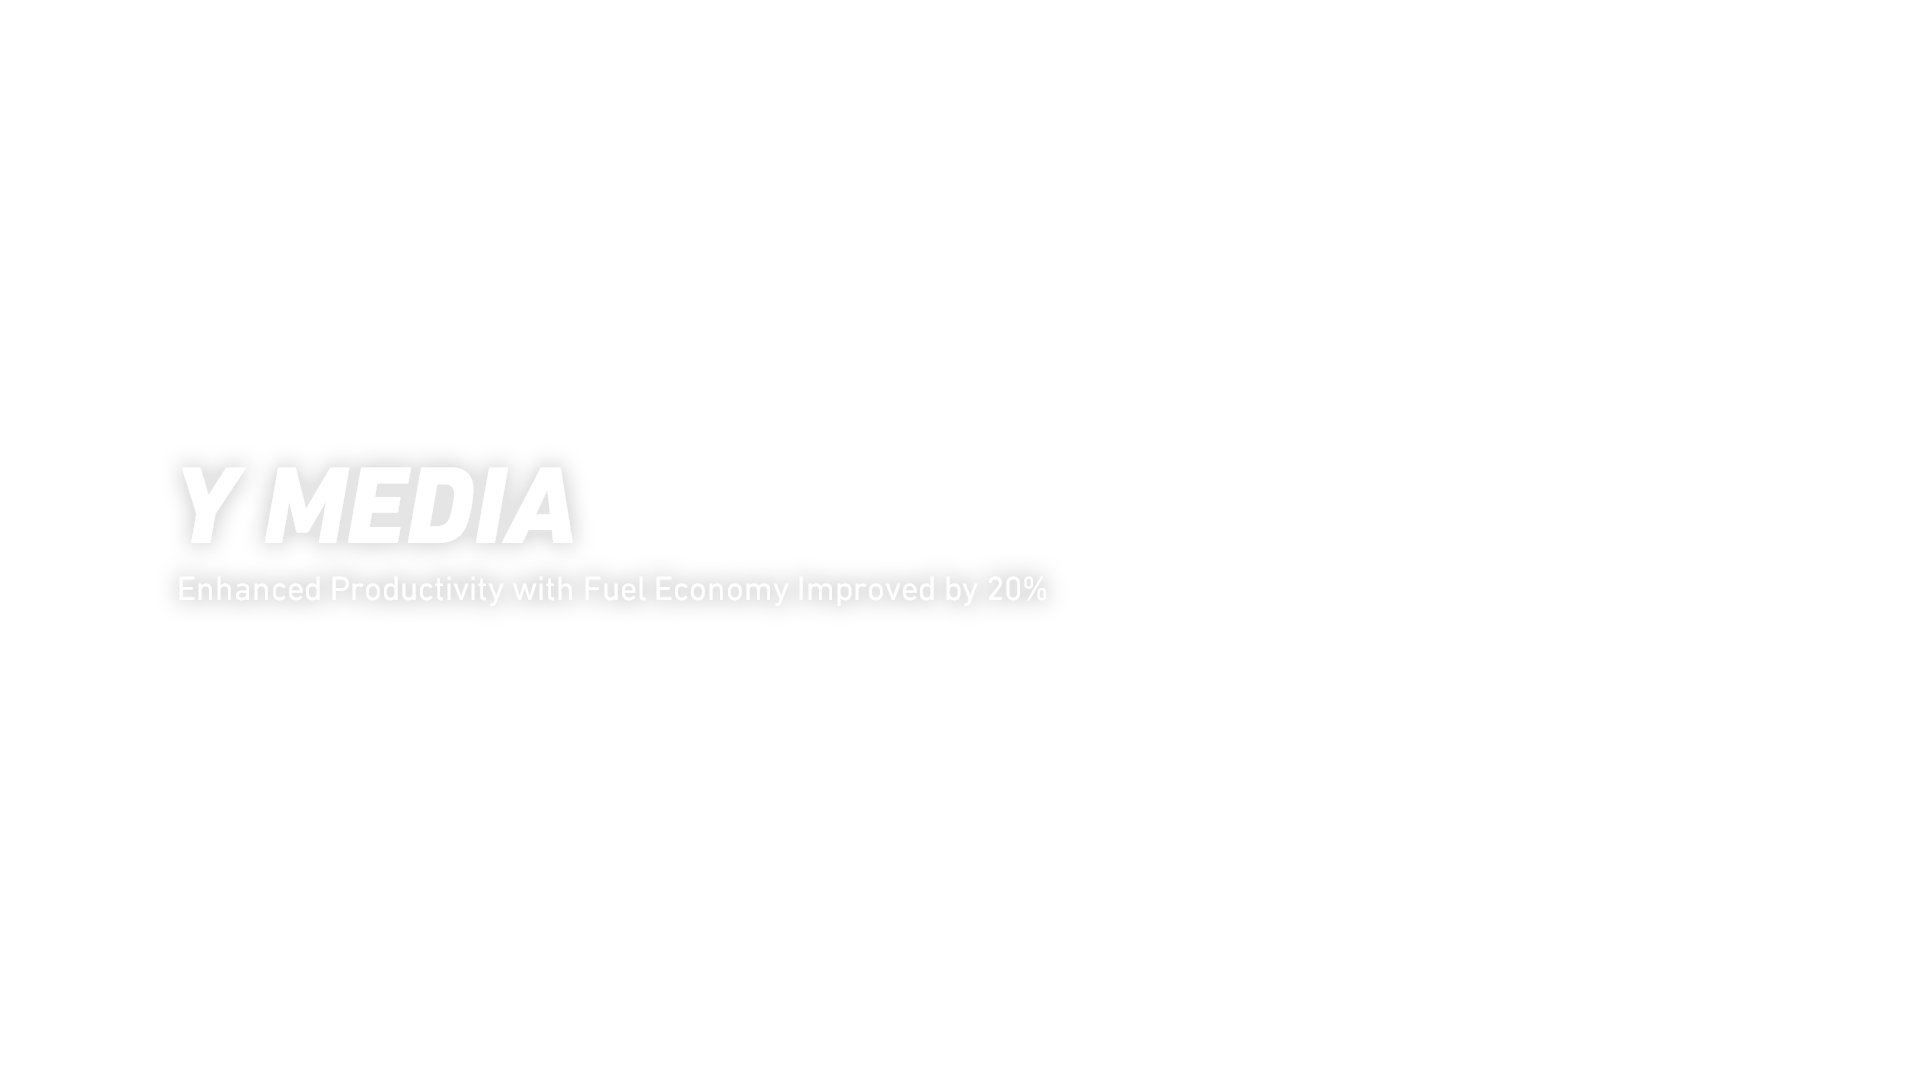 Y MEDIA Enhanced Productivity with Fuel Economy Improved by 20%